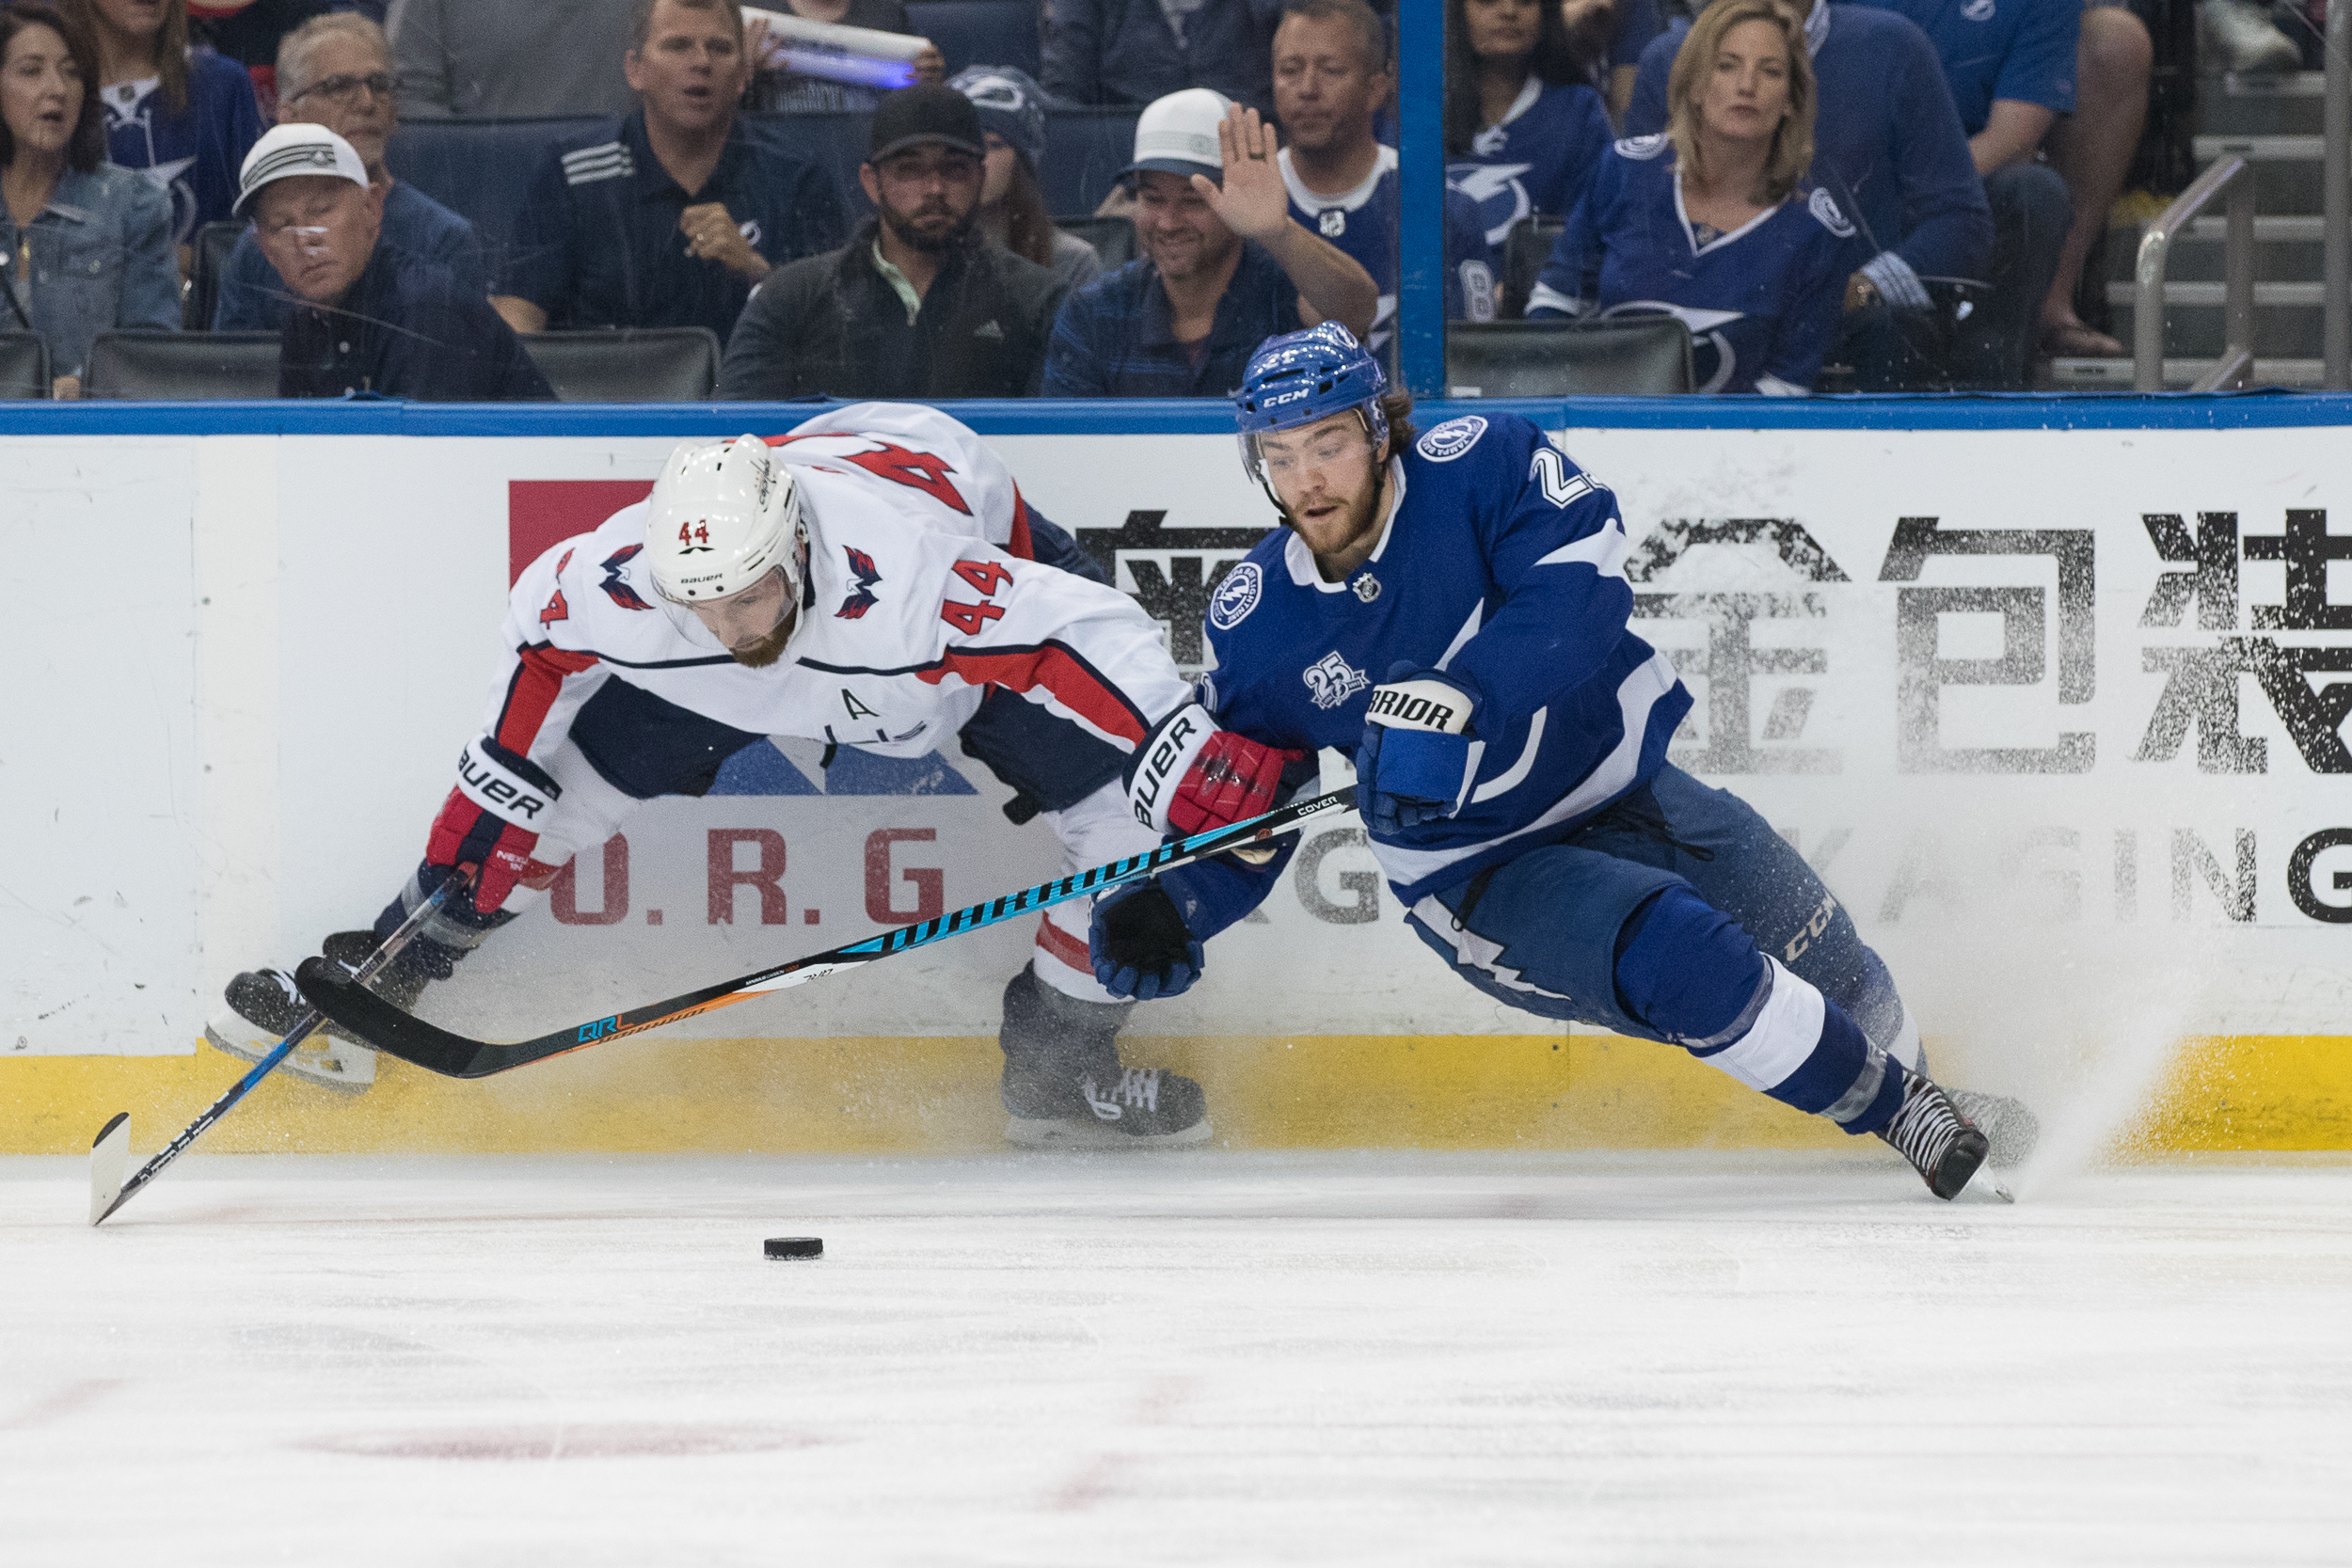 Brayden Point and Opik slip while trying to get to the puck./STEVEN MUNCIE